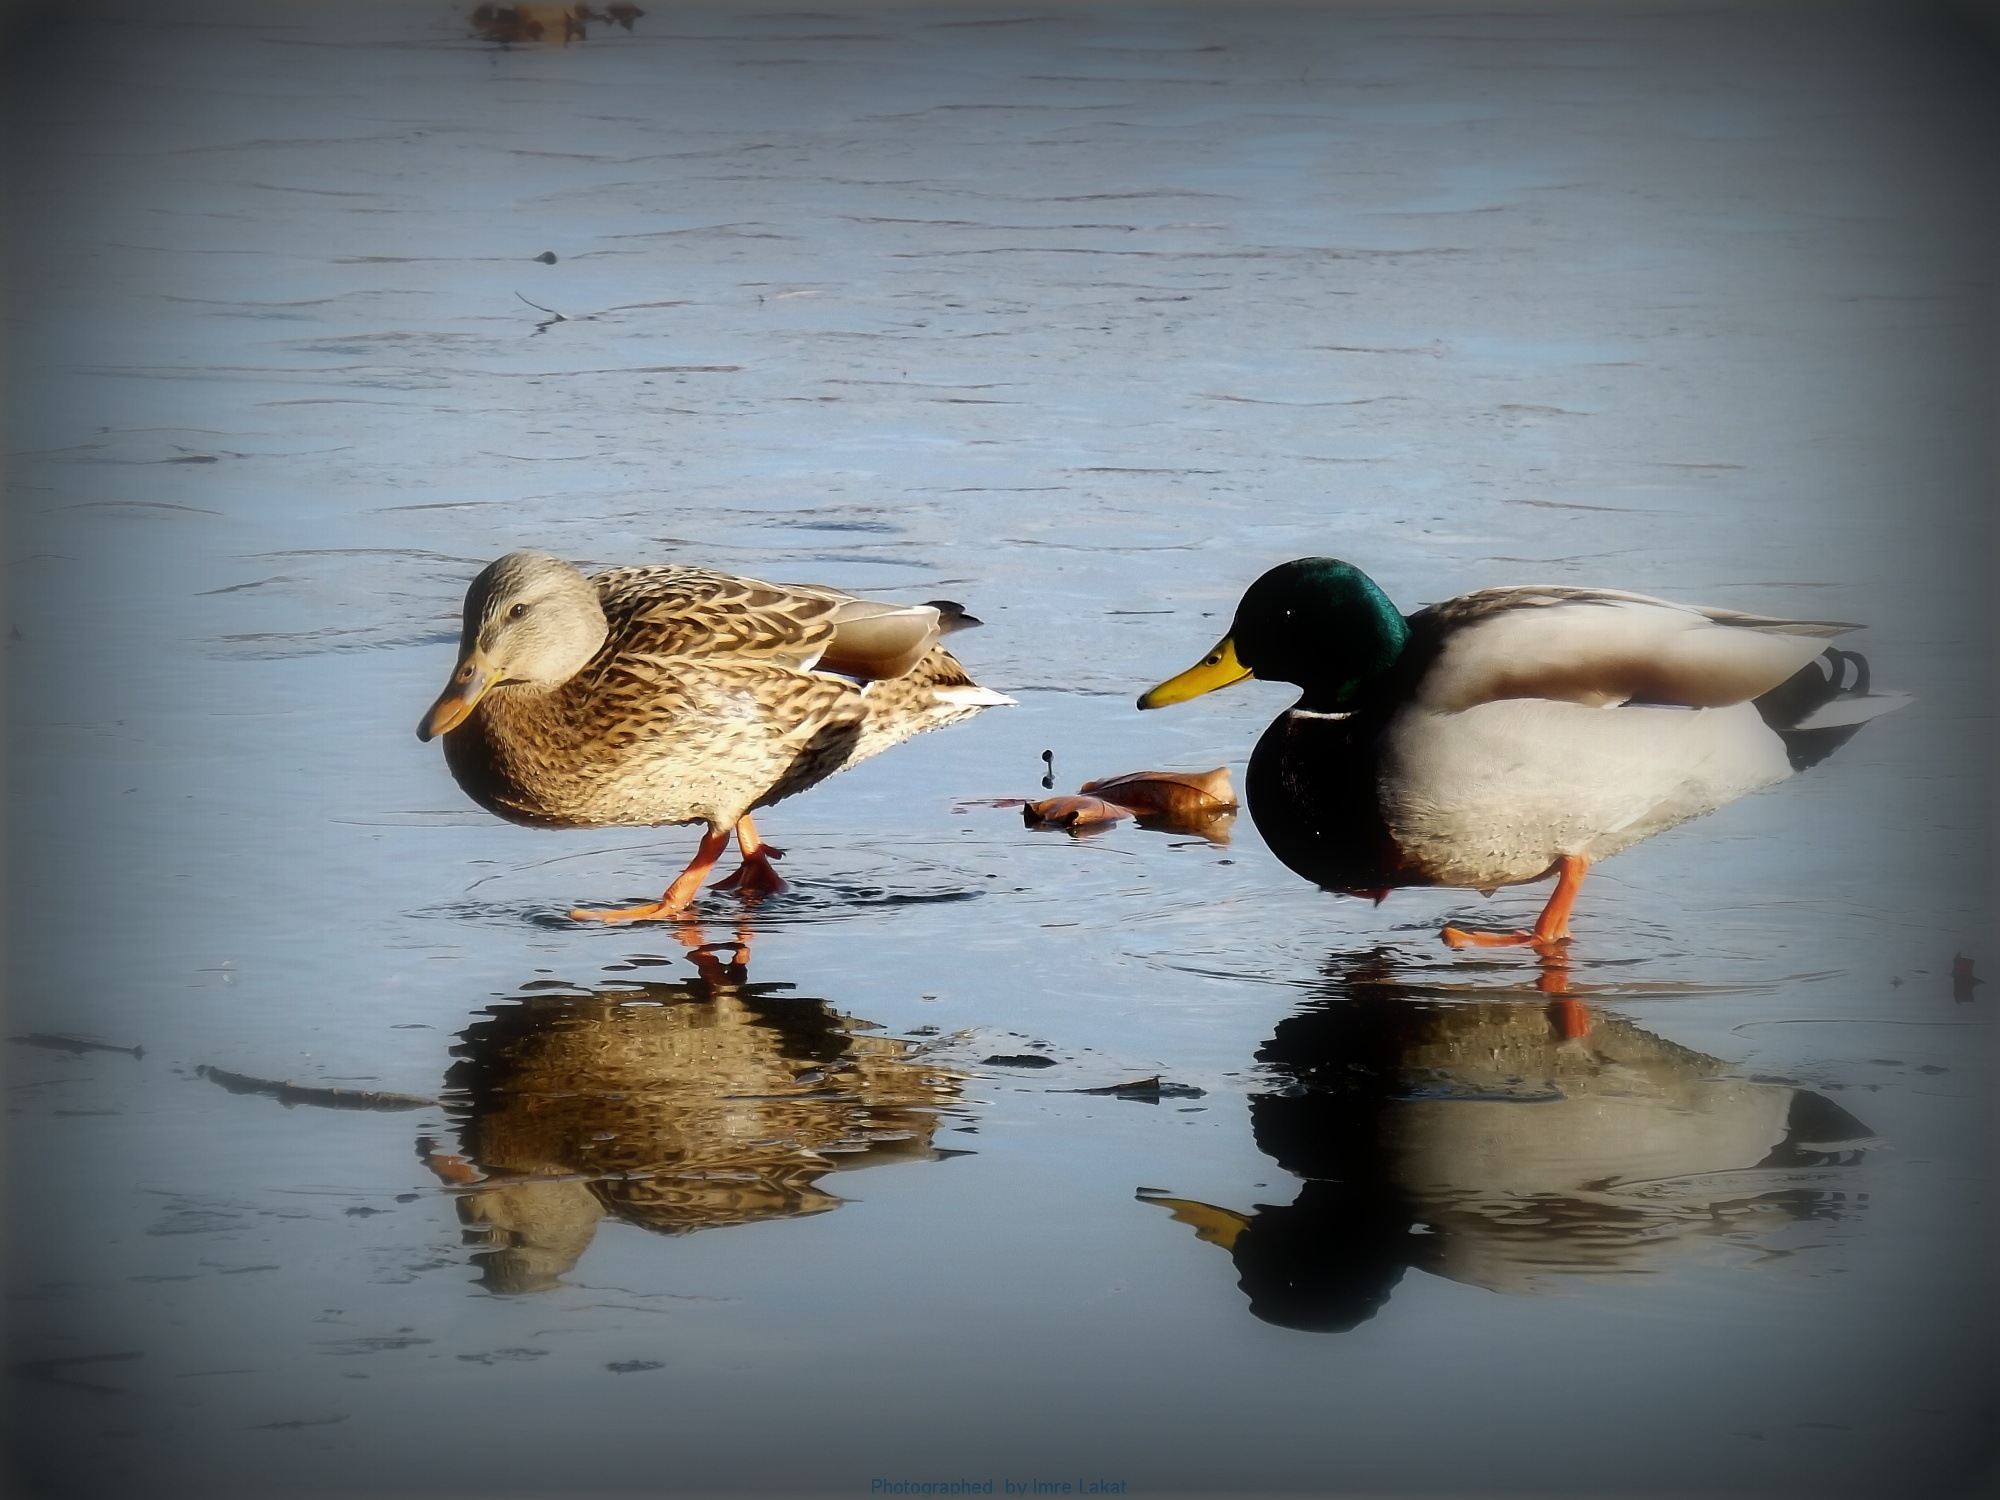 A pair of ducks on the frozen ice by Imre Lakat